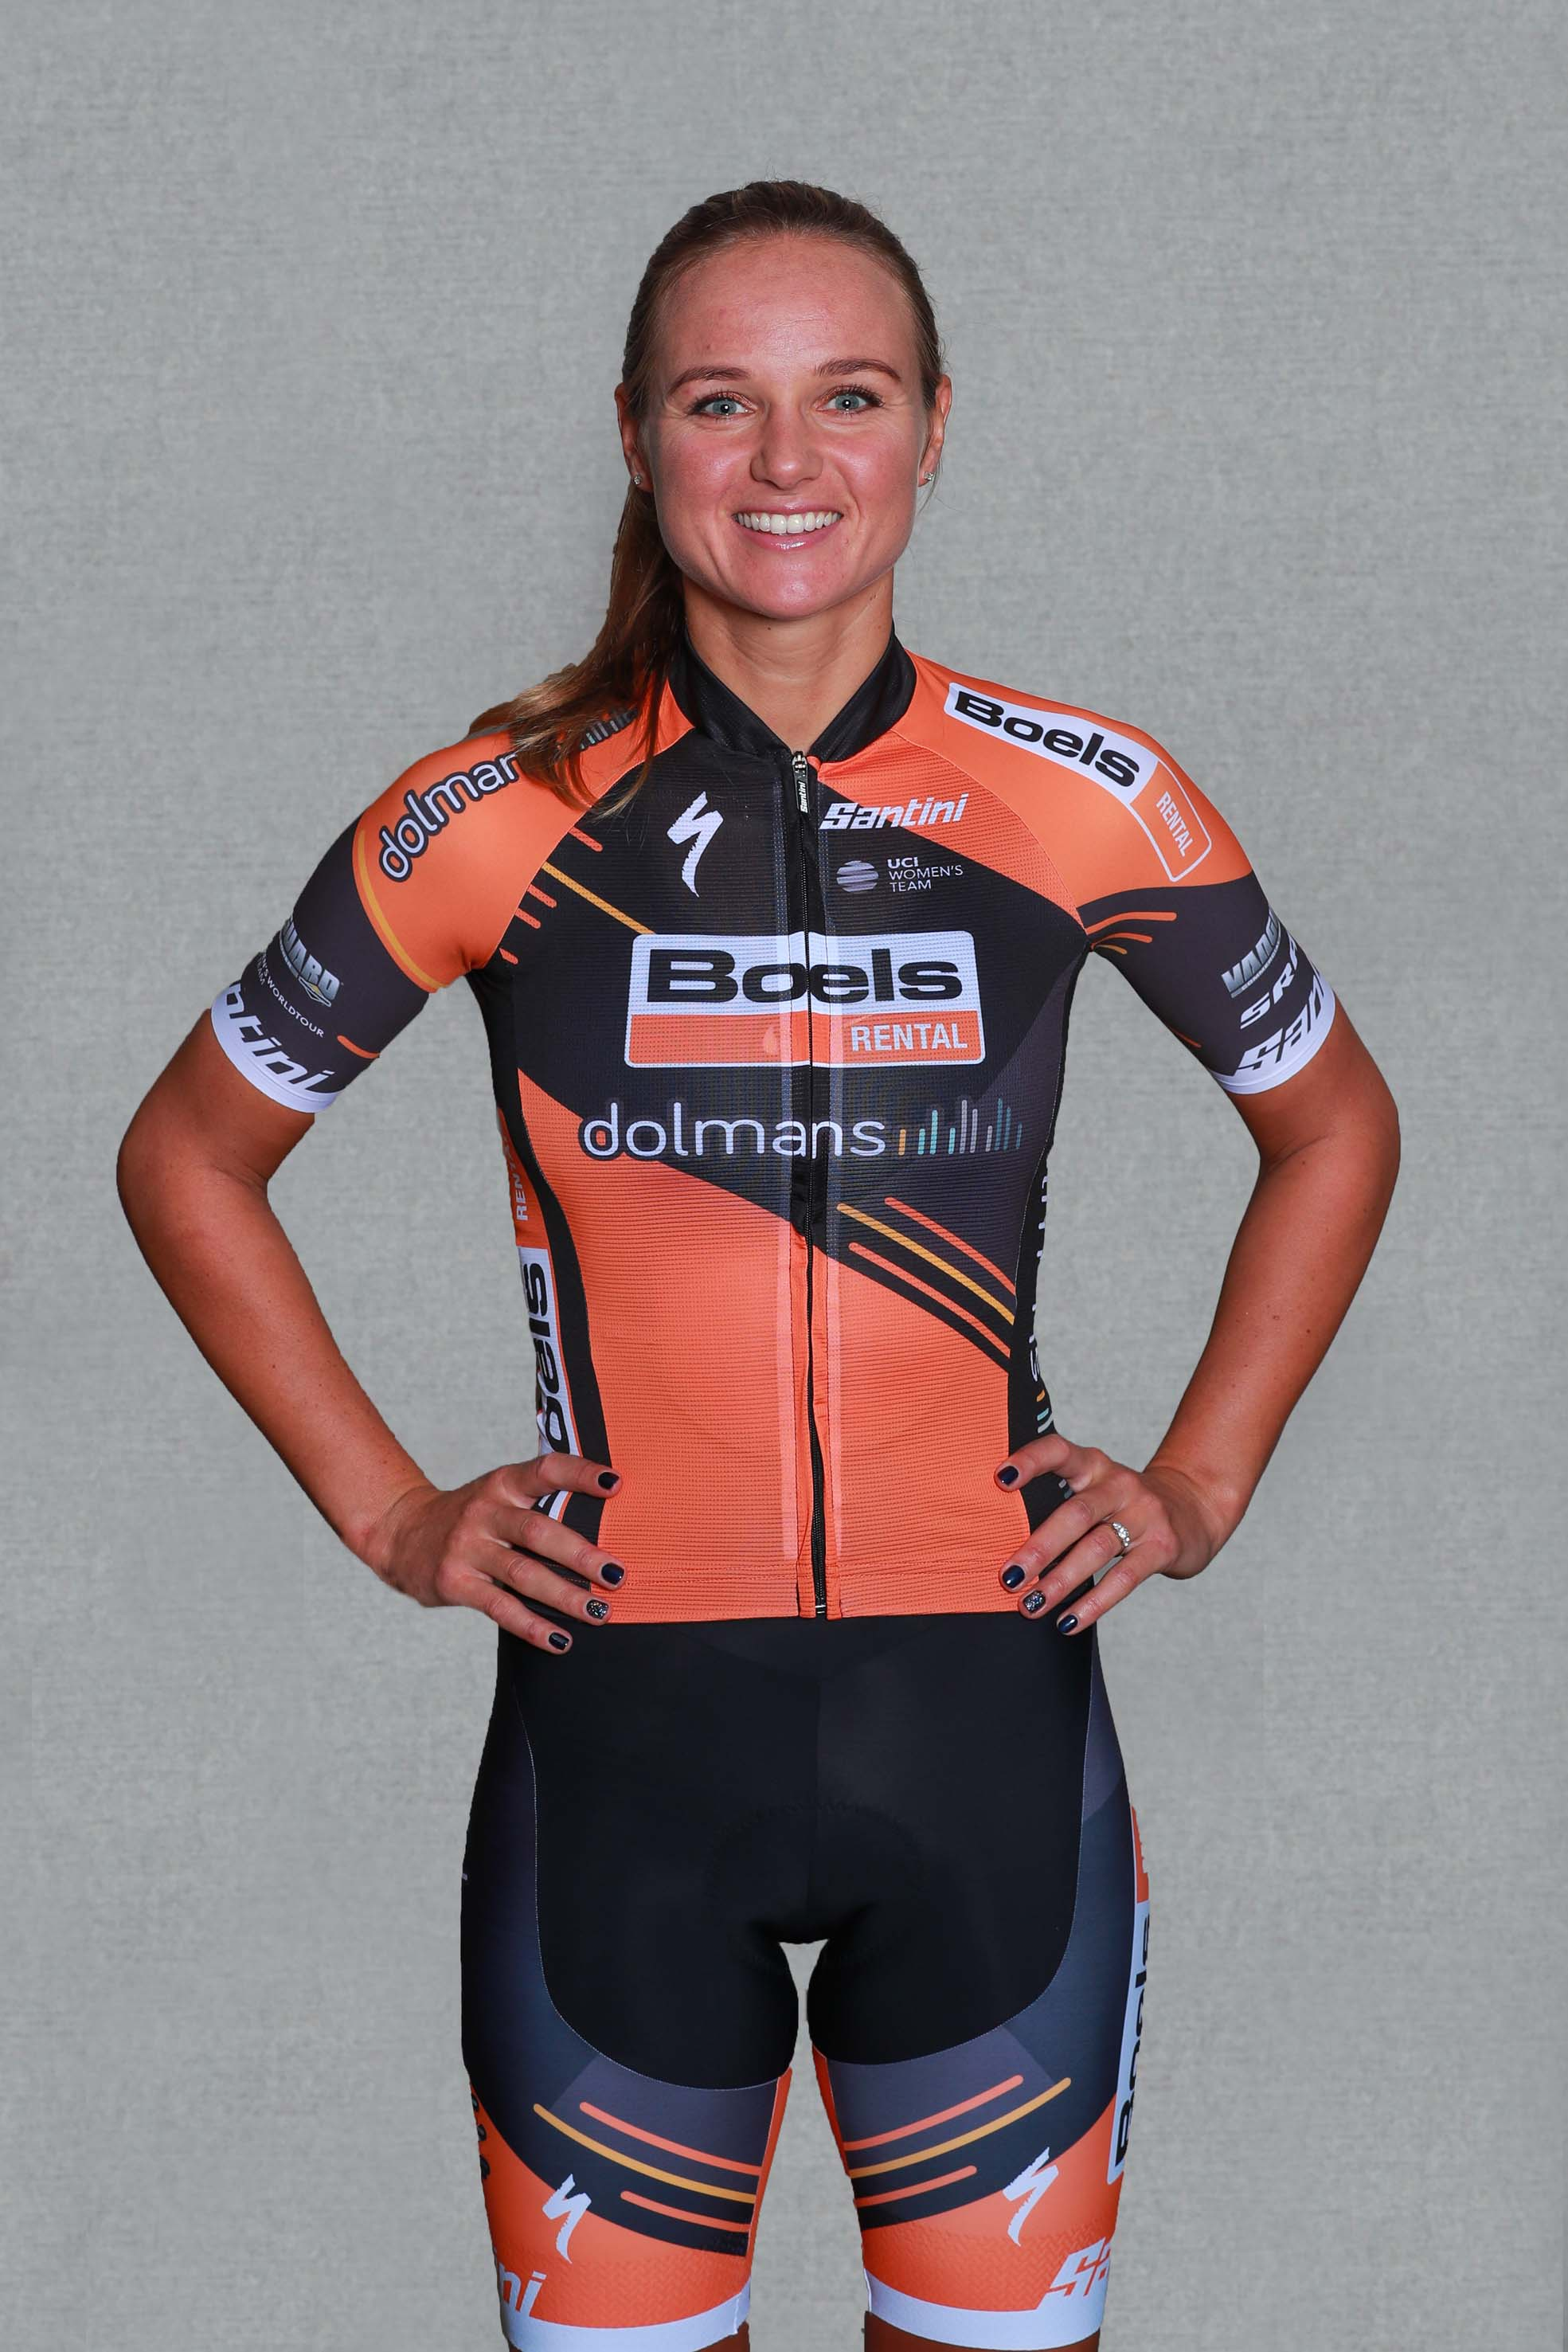 #NEWKITDAY - SANTINI DESIGNS BOELS-DOLMANS WOMEN'S TEAM KIT FOR THIRD CONSECUTIVE YEAR